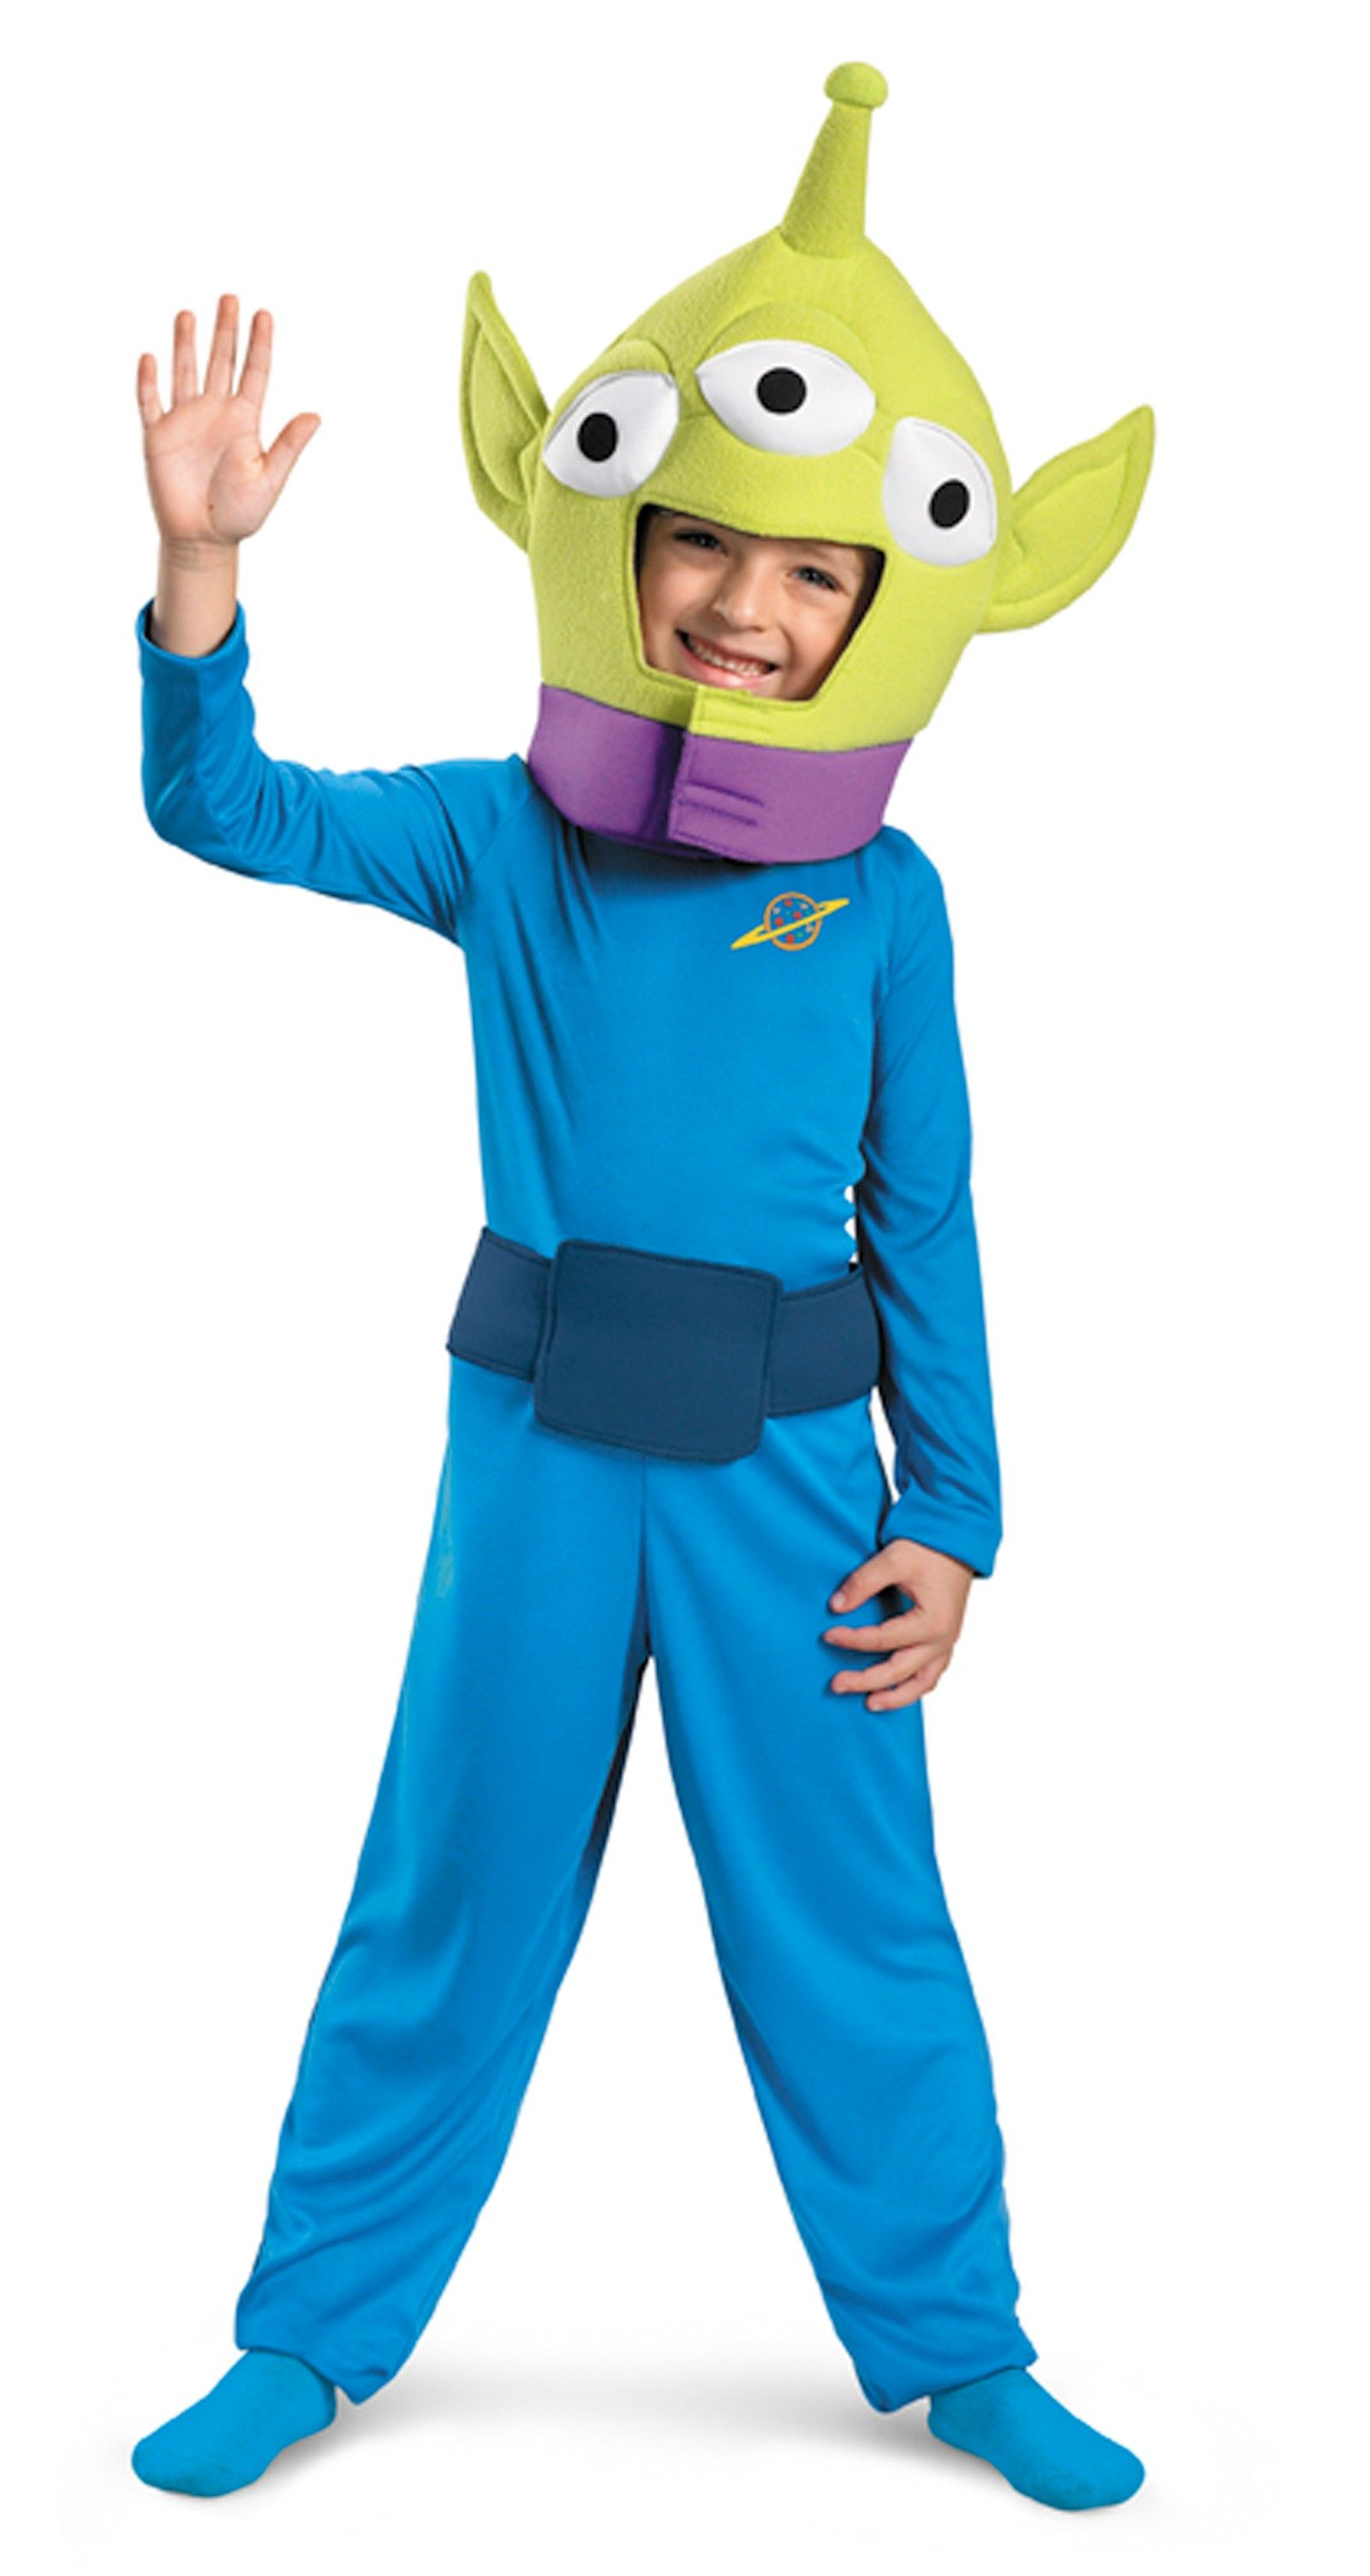 toy story alien classic toddler child costume - Toy Story Alien Halloween Costume